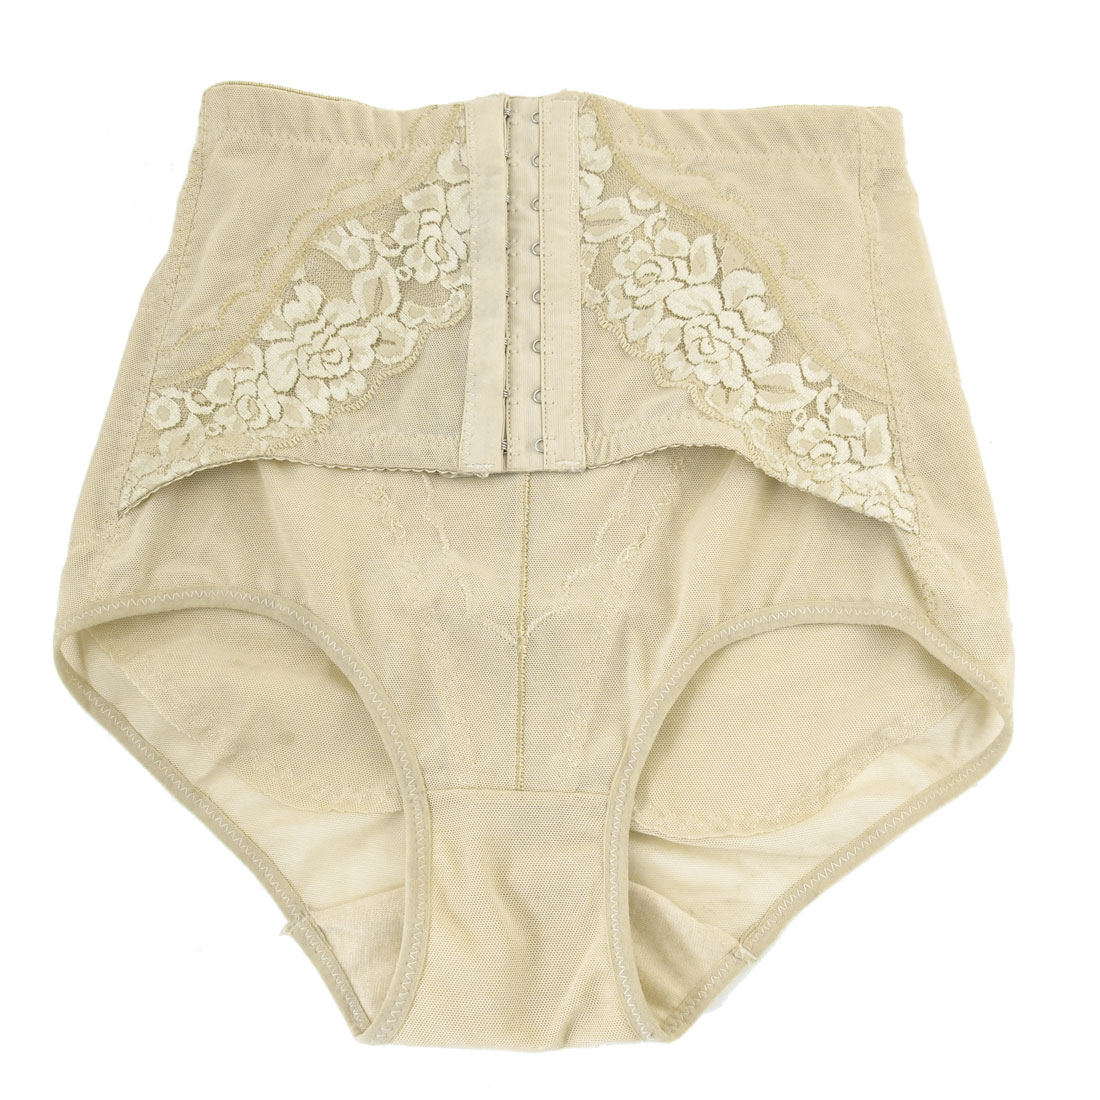 Lace Flowers Detail Elastic Corset Underwear Brief Beige XS for Women